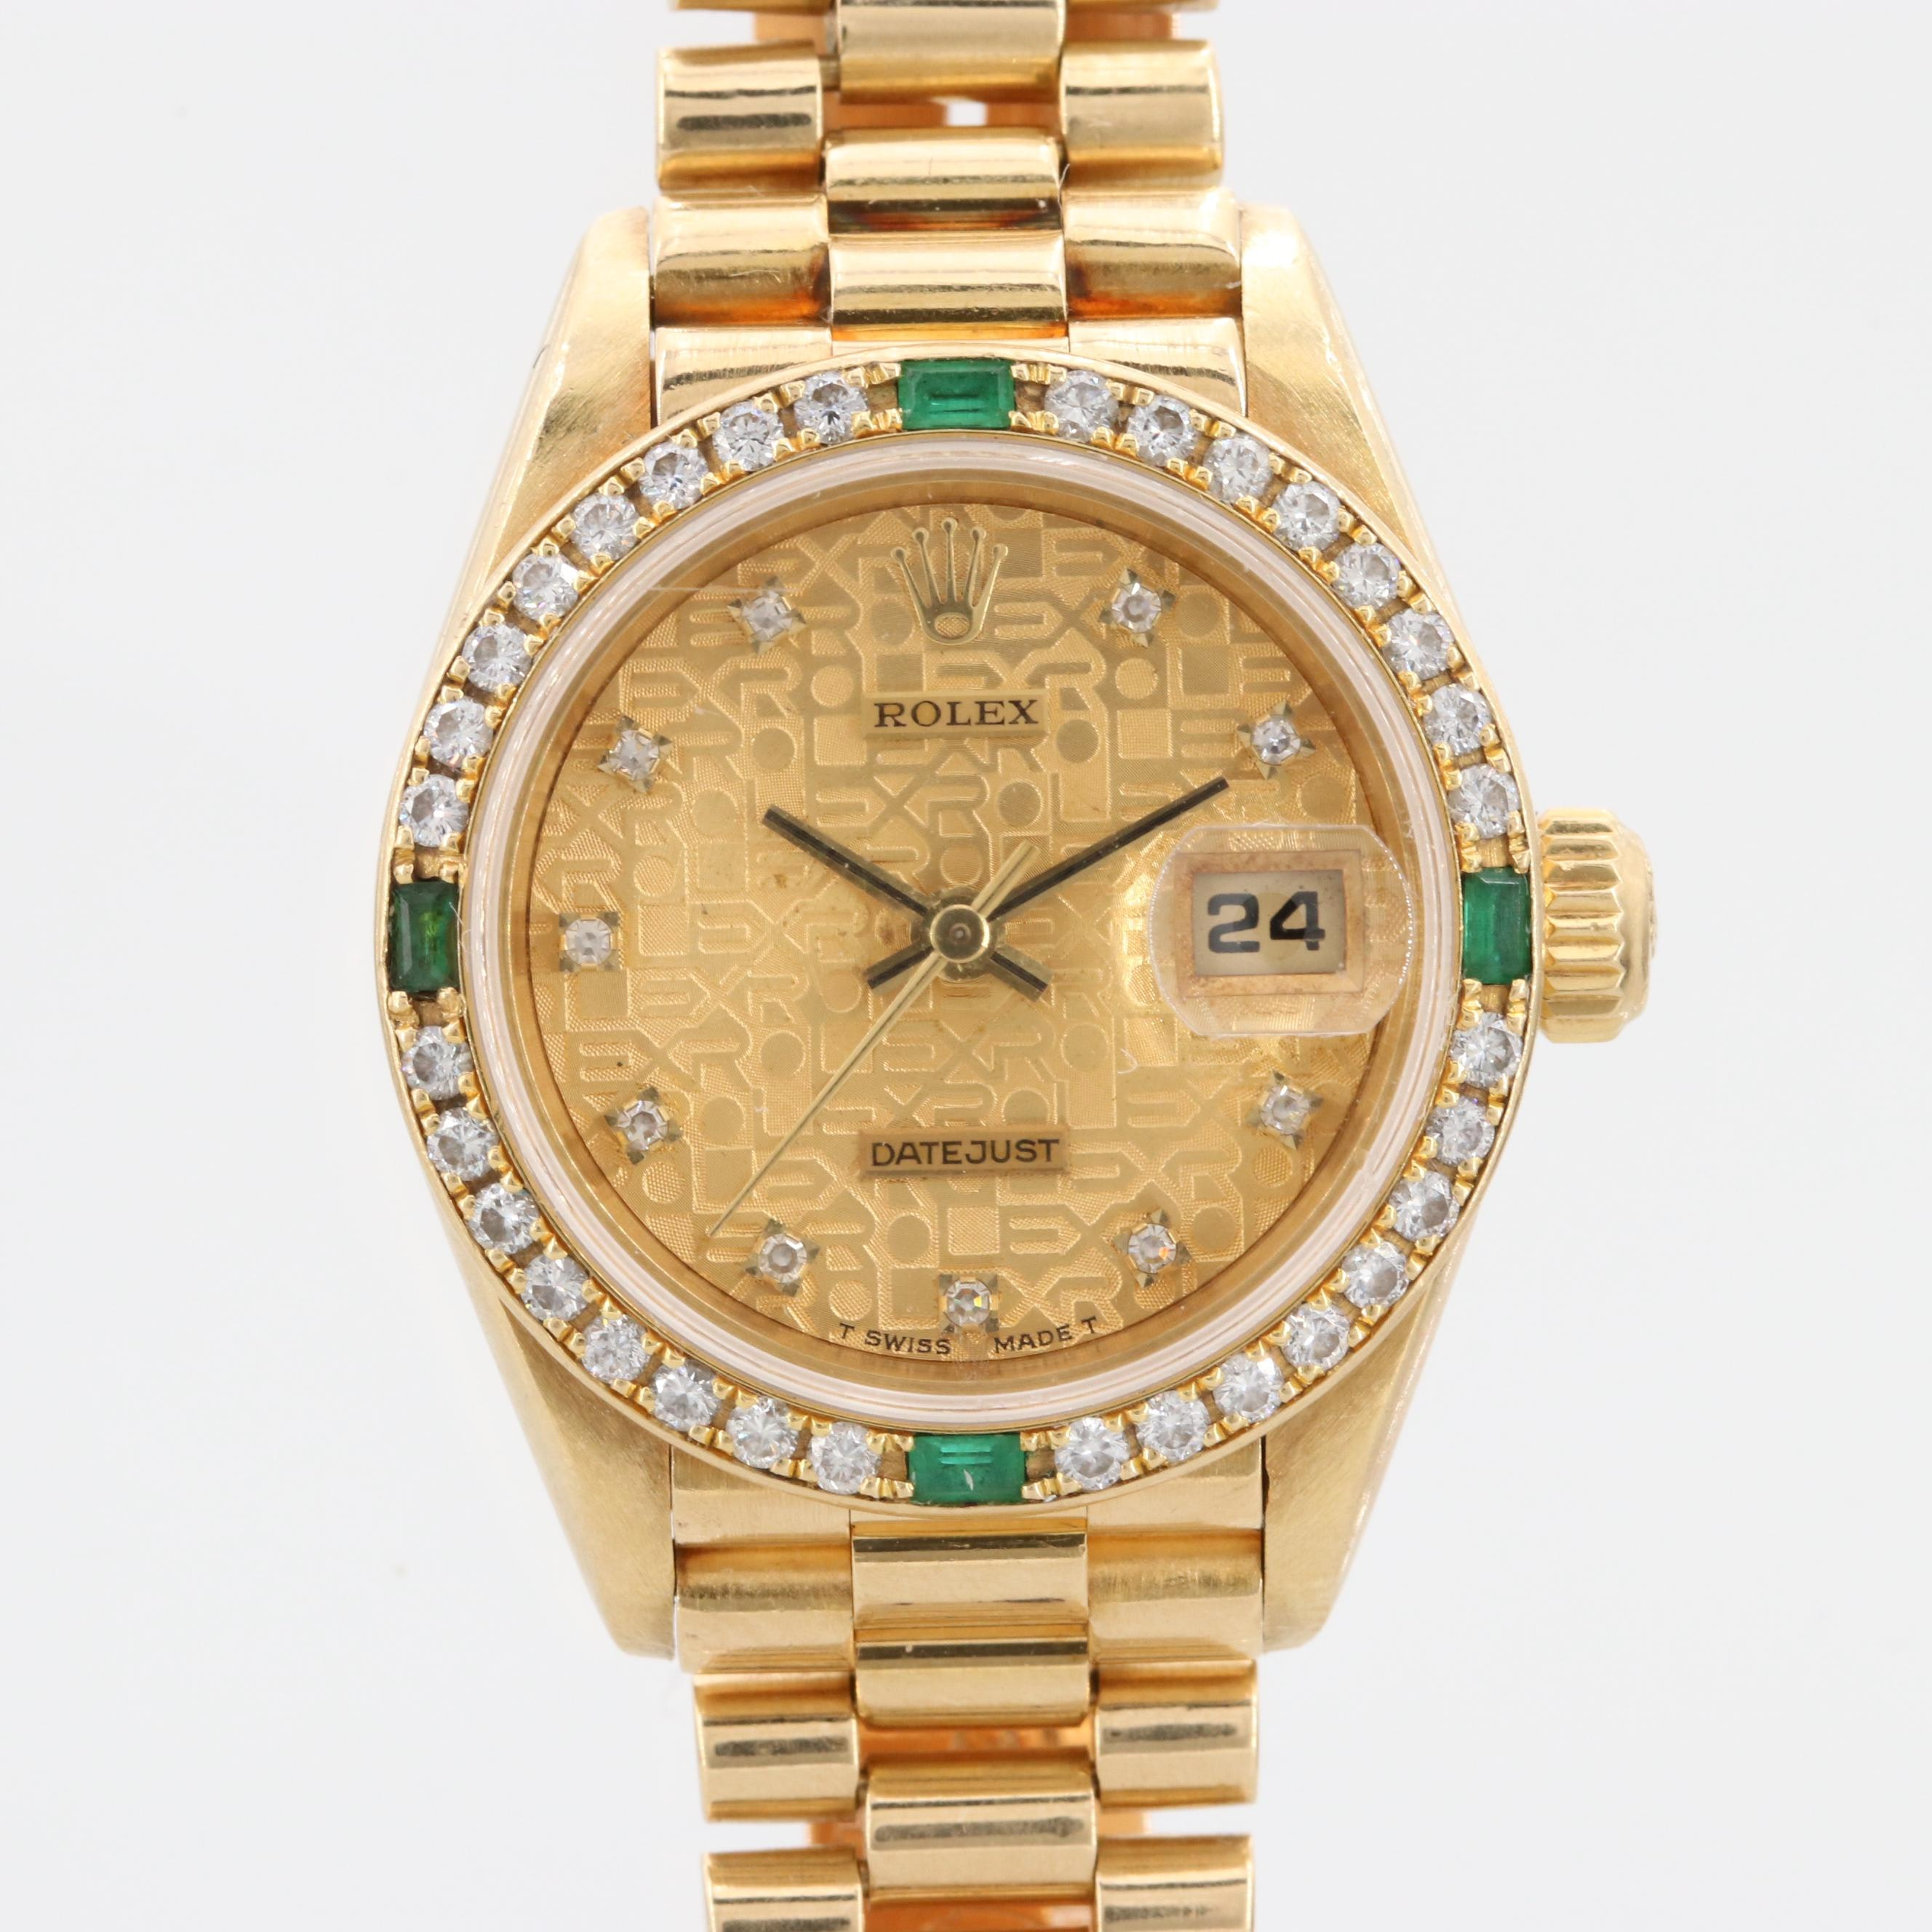 Rolex Datejust 18K Yellow Gold Diamond and Emerald Wristwatch, 1990